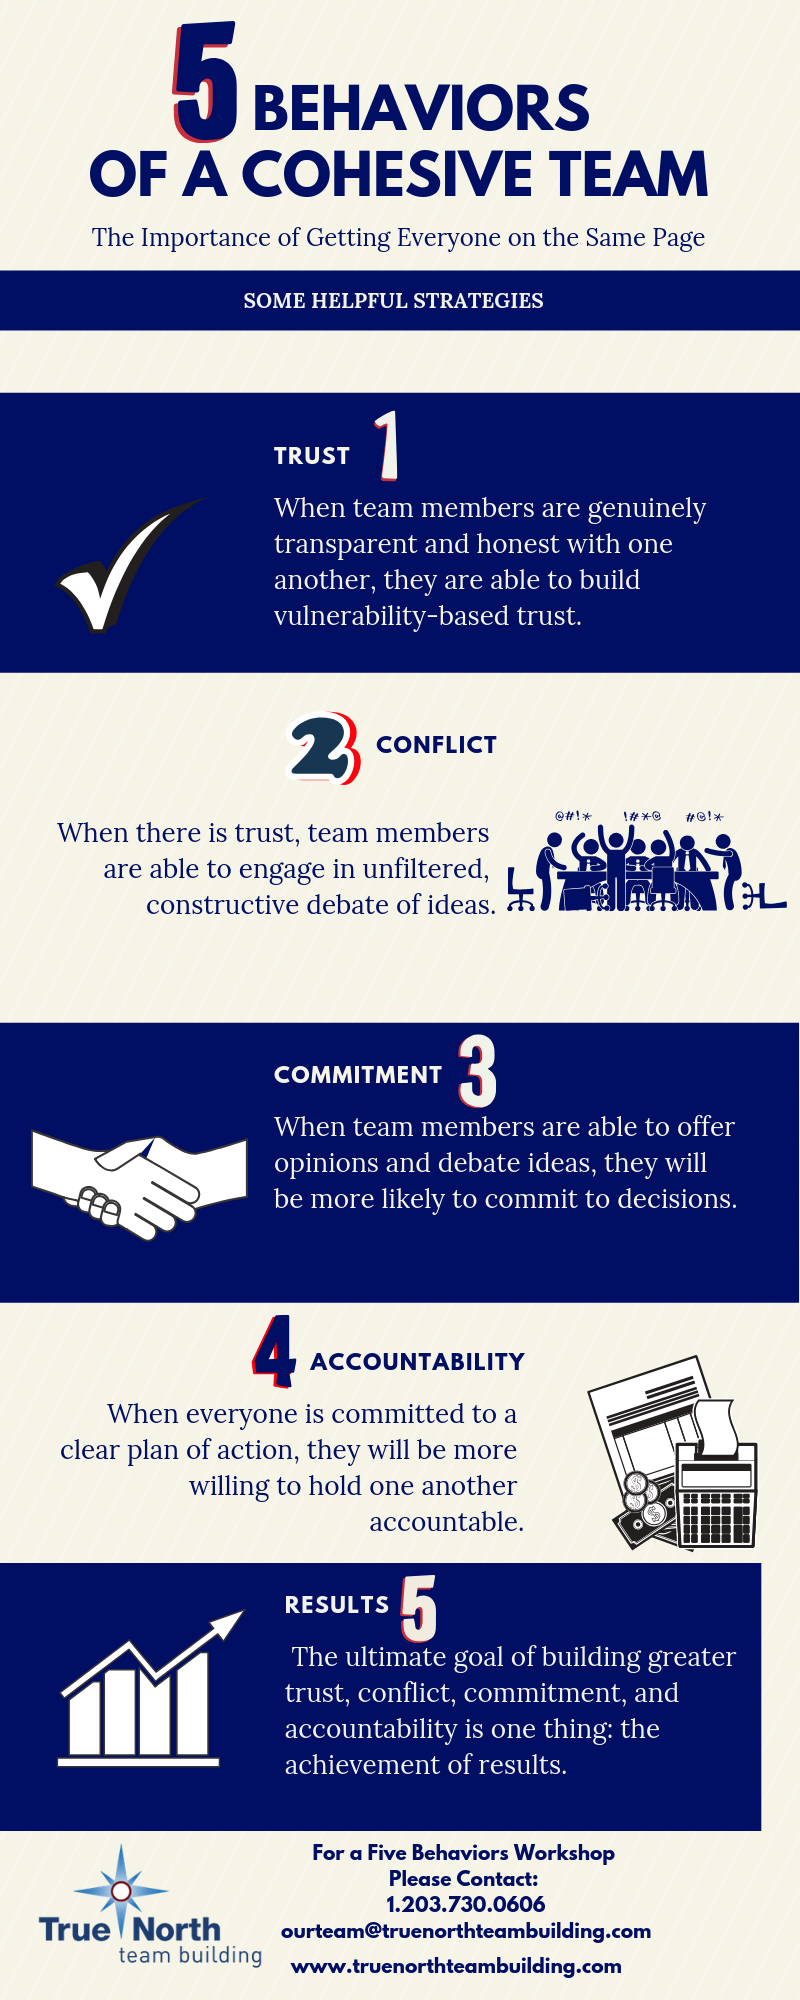 List of 5 Behaviors of a cohesive team